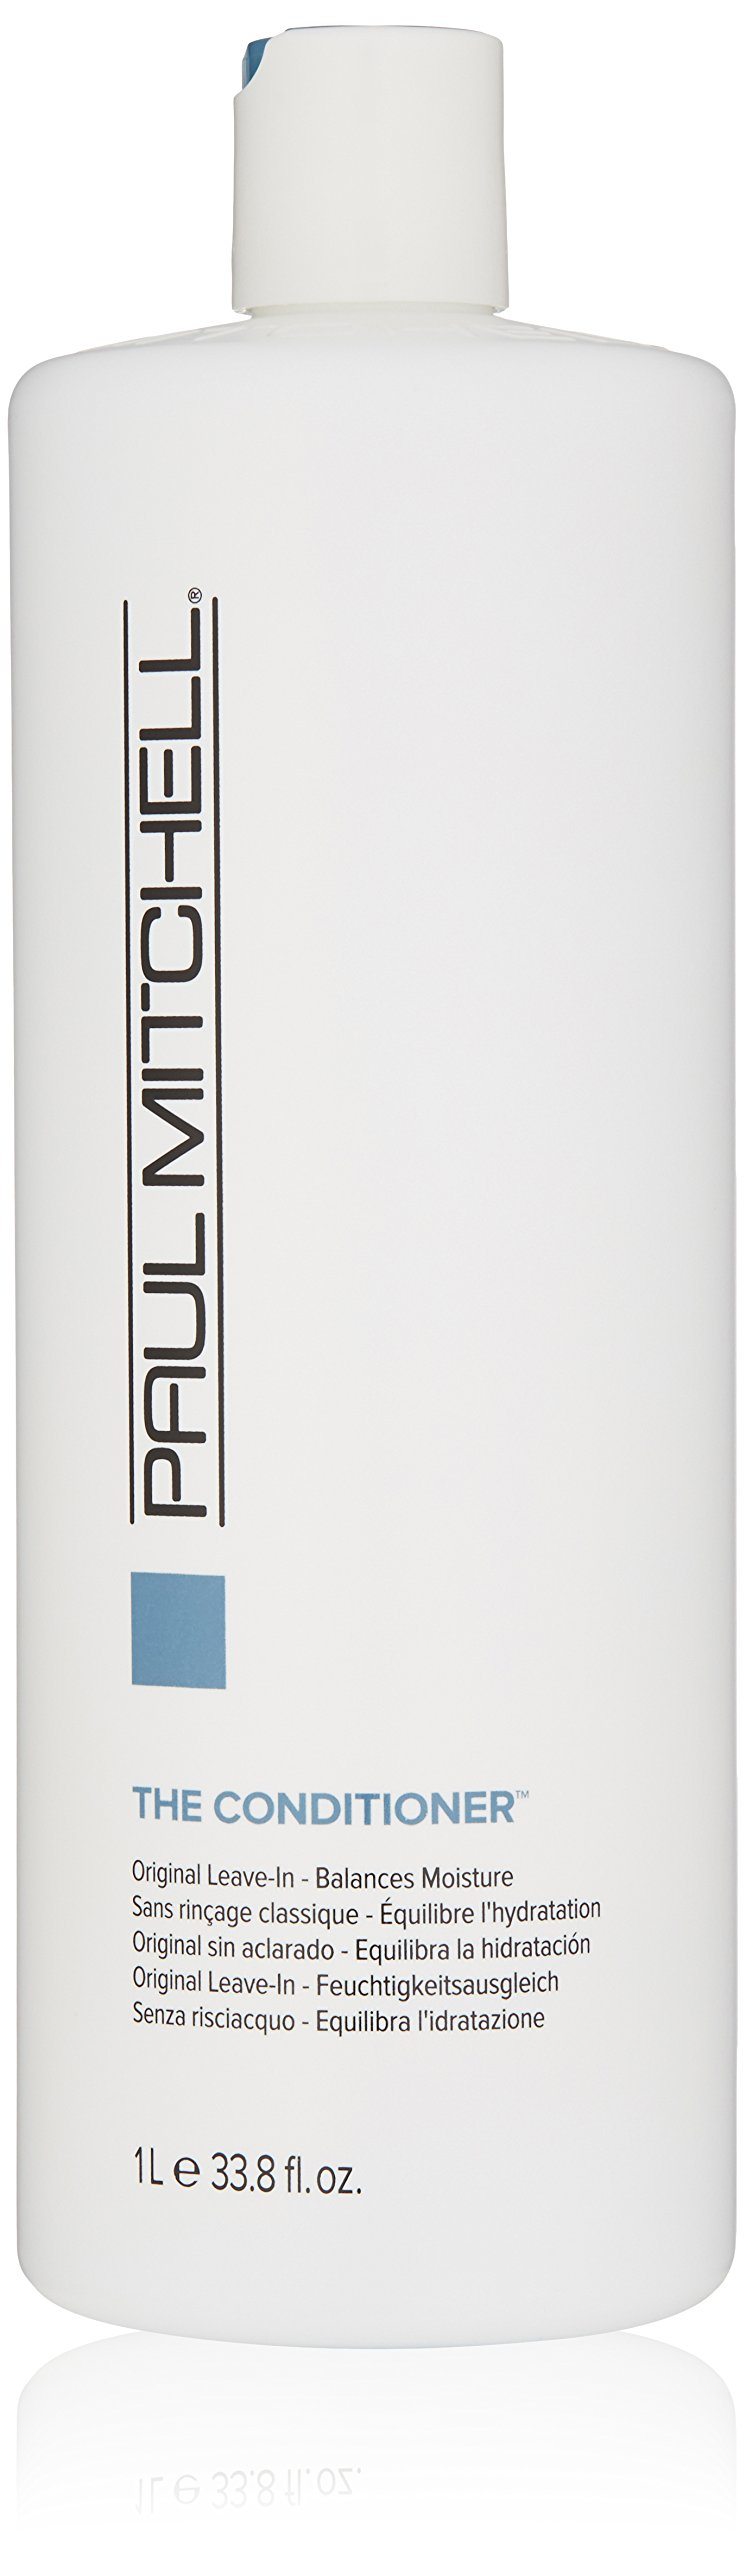 Paul Mitchell The Conditioner,33.8 Fl Oz by Paul Mitchell